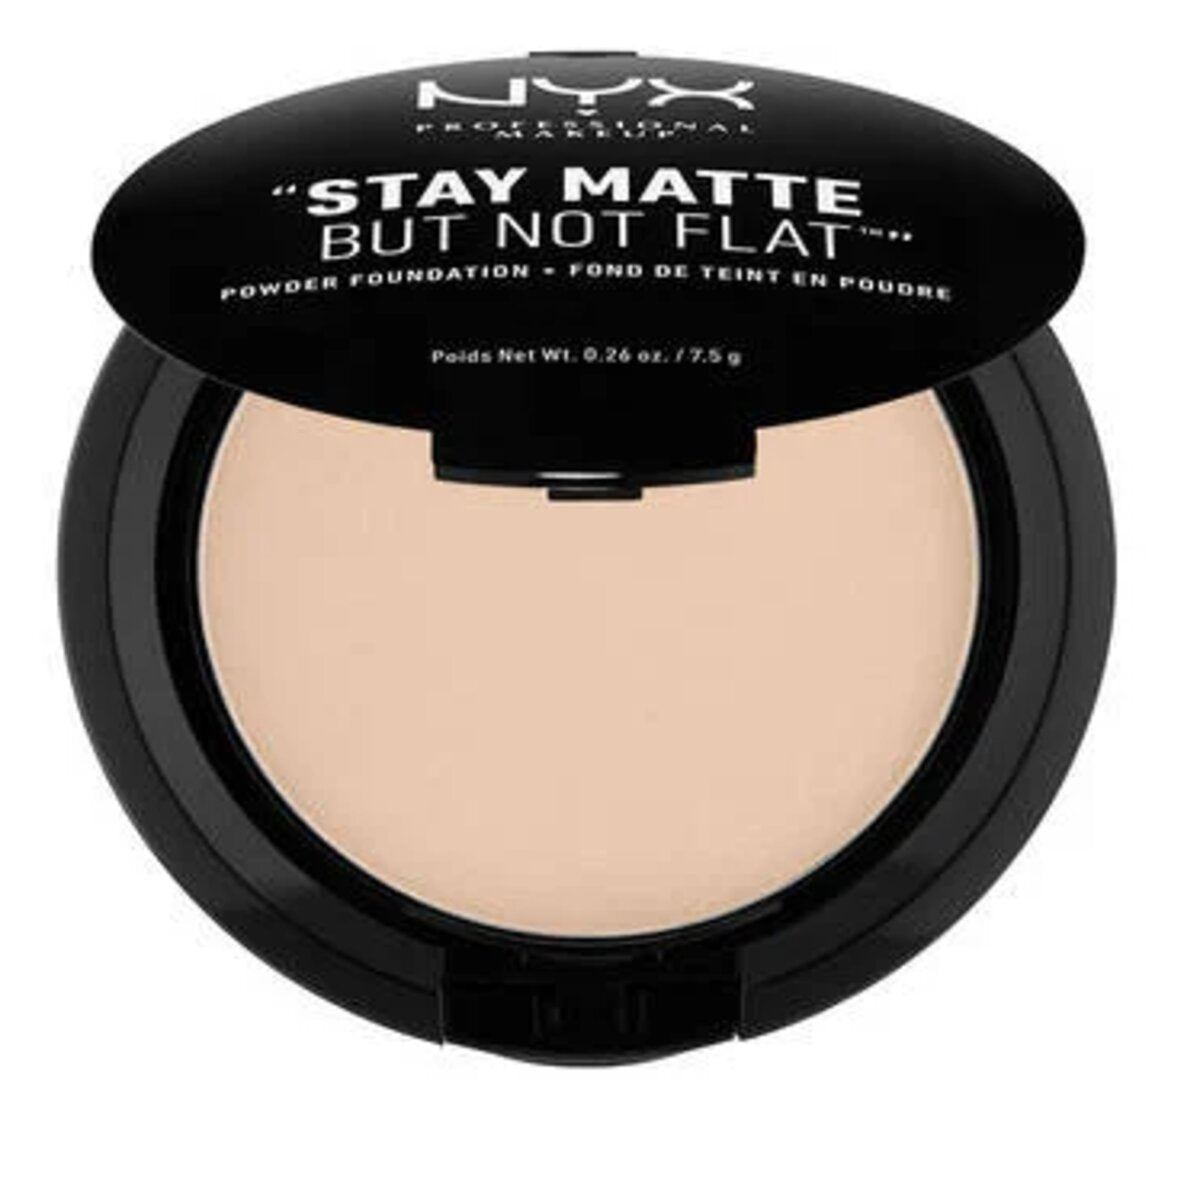 STAY MATTE BUT NOT FLAT POWDER FOUNDATION NUDE - NYX PROFESSIONAL MAKEUP